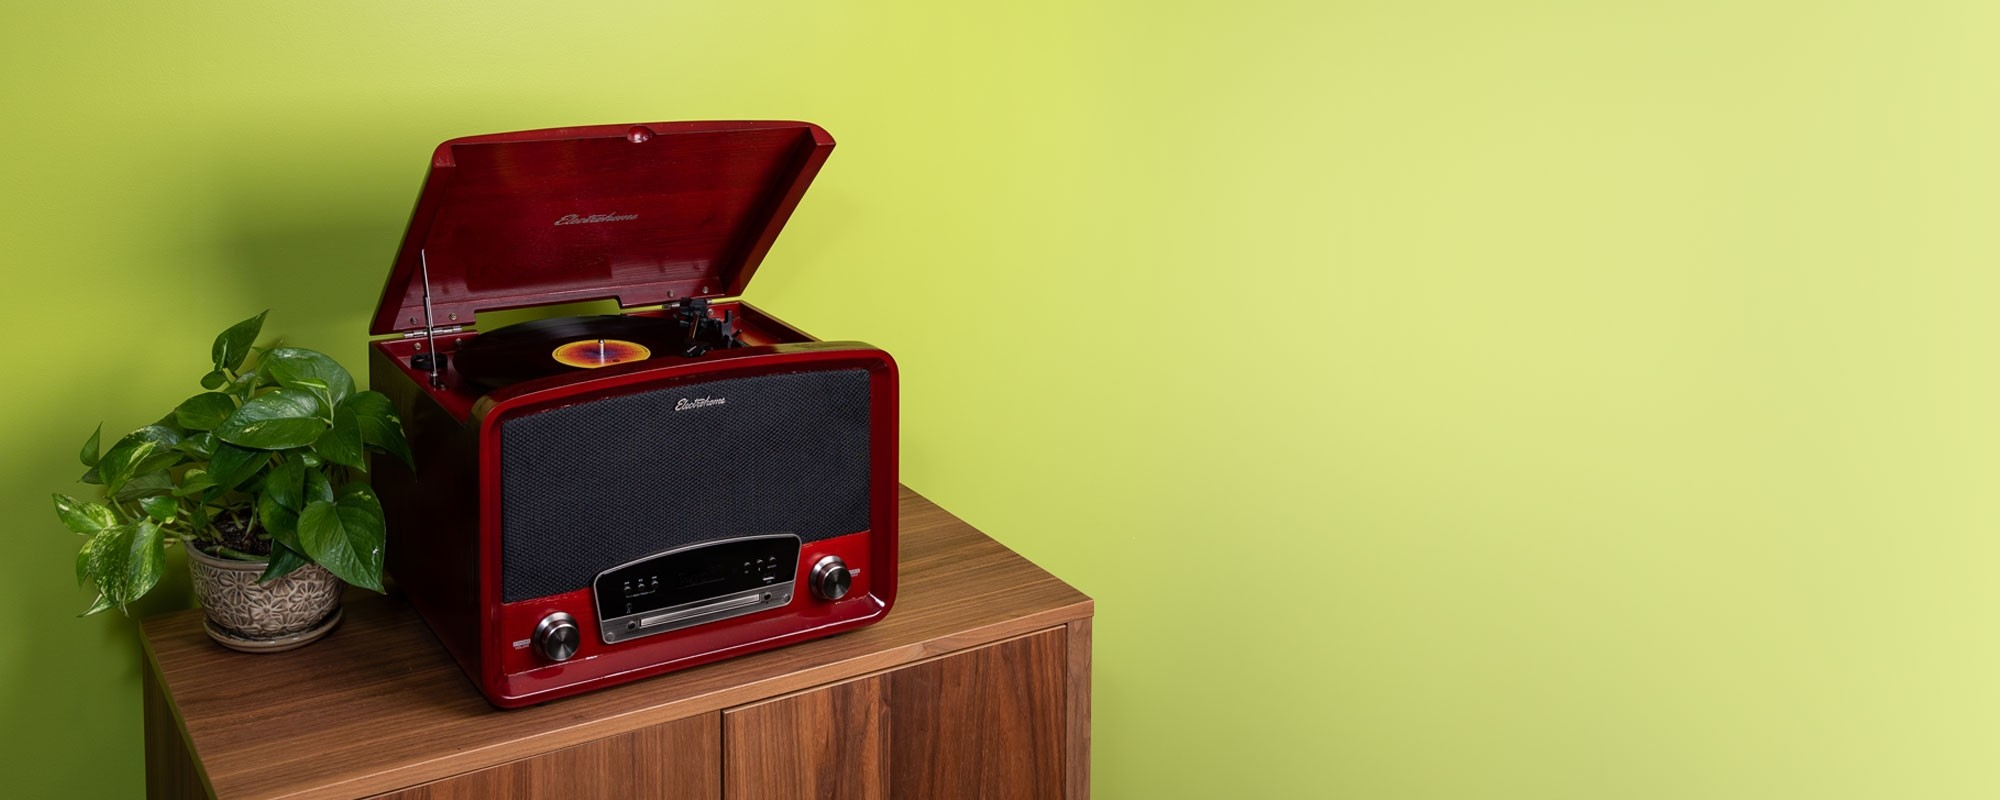 Concerto 7-in-1 Vinyl Record Player - Lifestyle Cherry